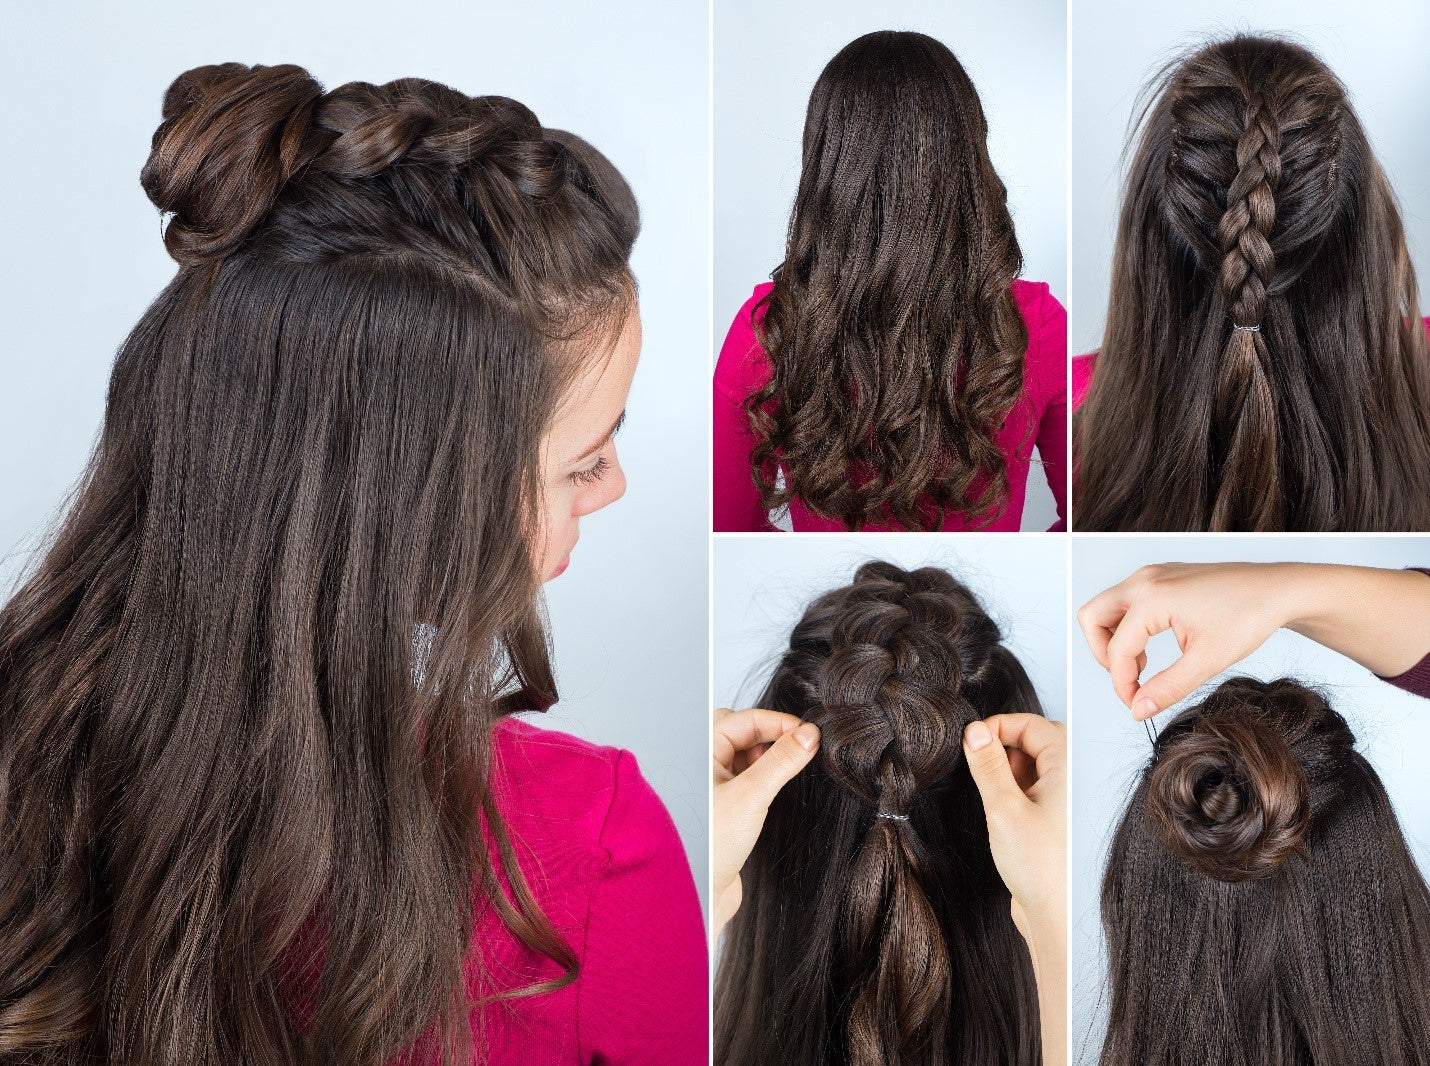 Turn Down The Heat With These Easy Hairstyles